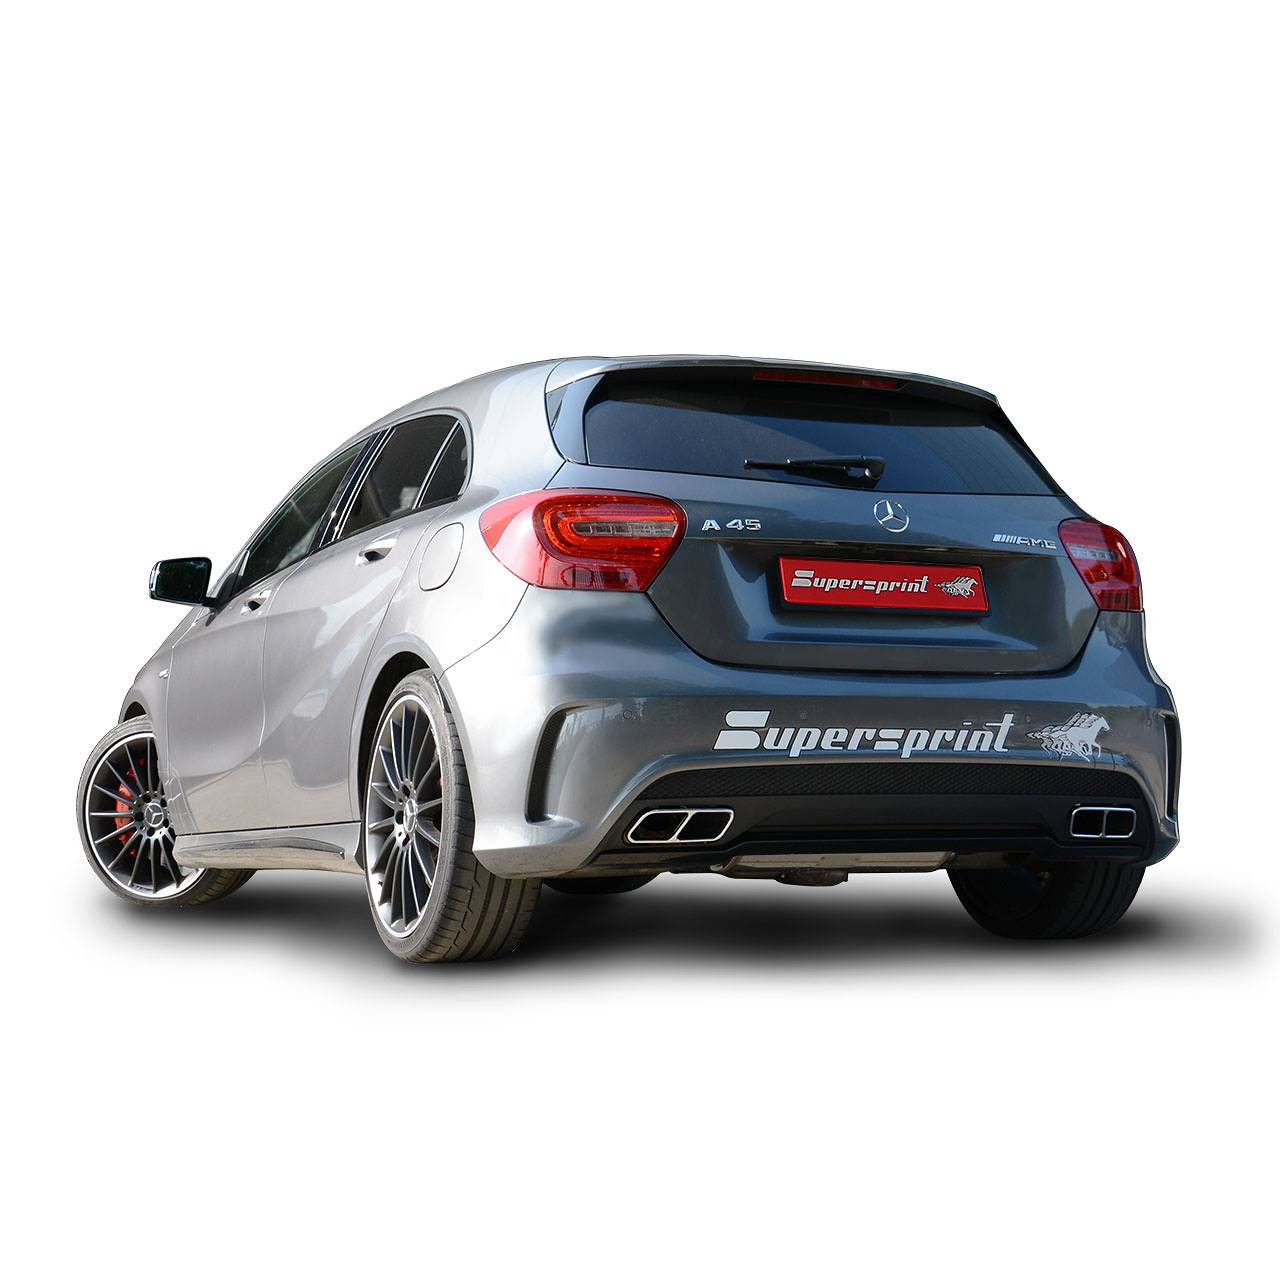 New Supersprint Performance Exhaust For Mercedes A45 Amg